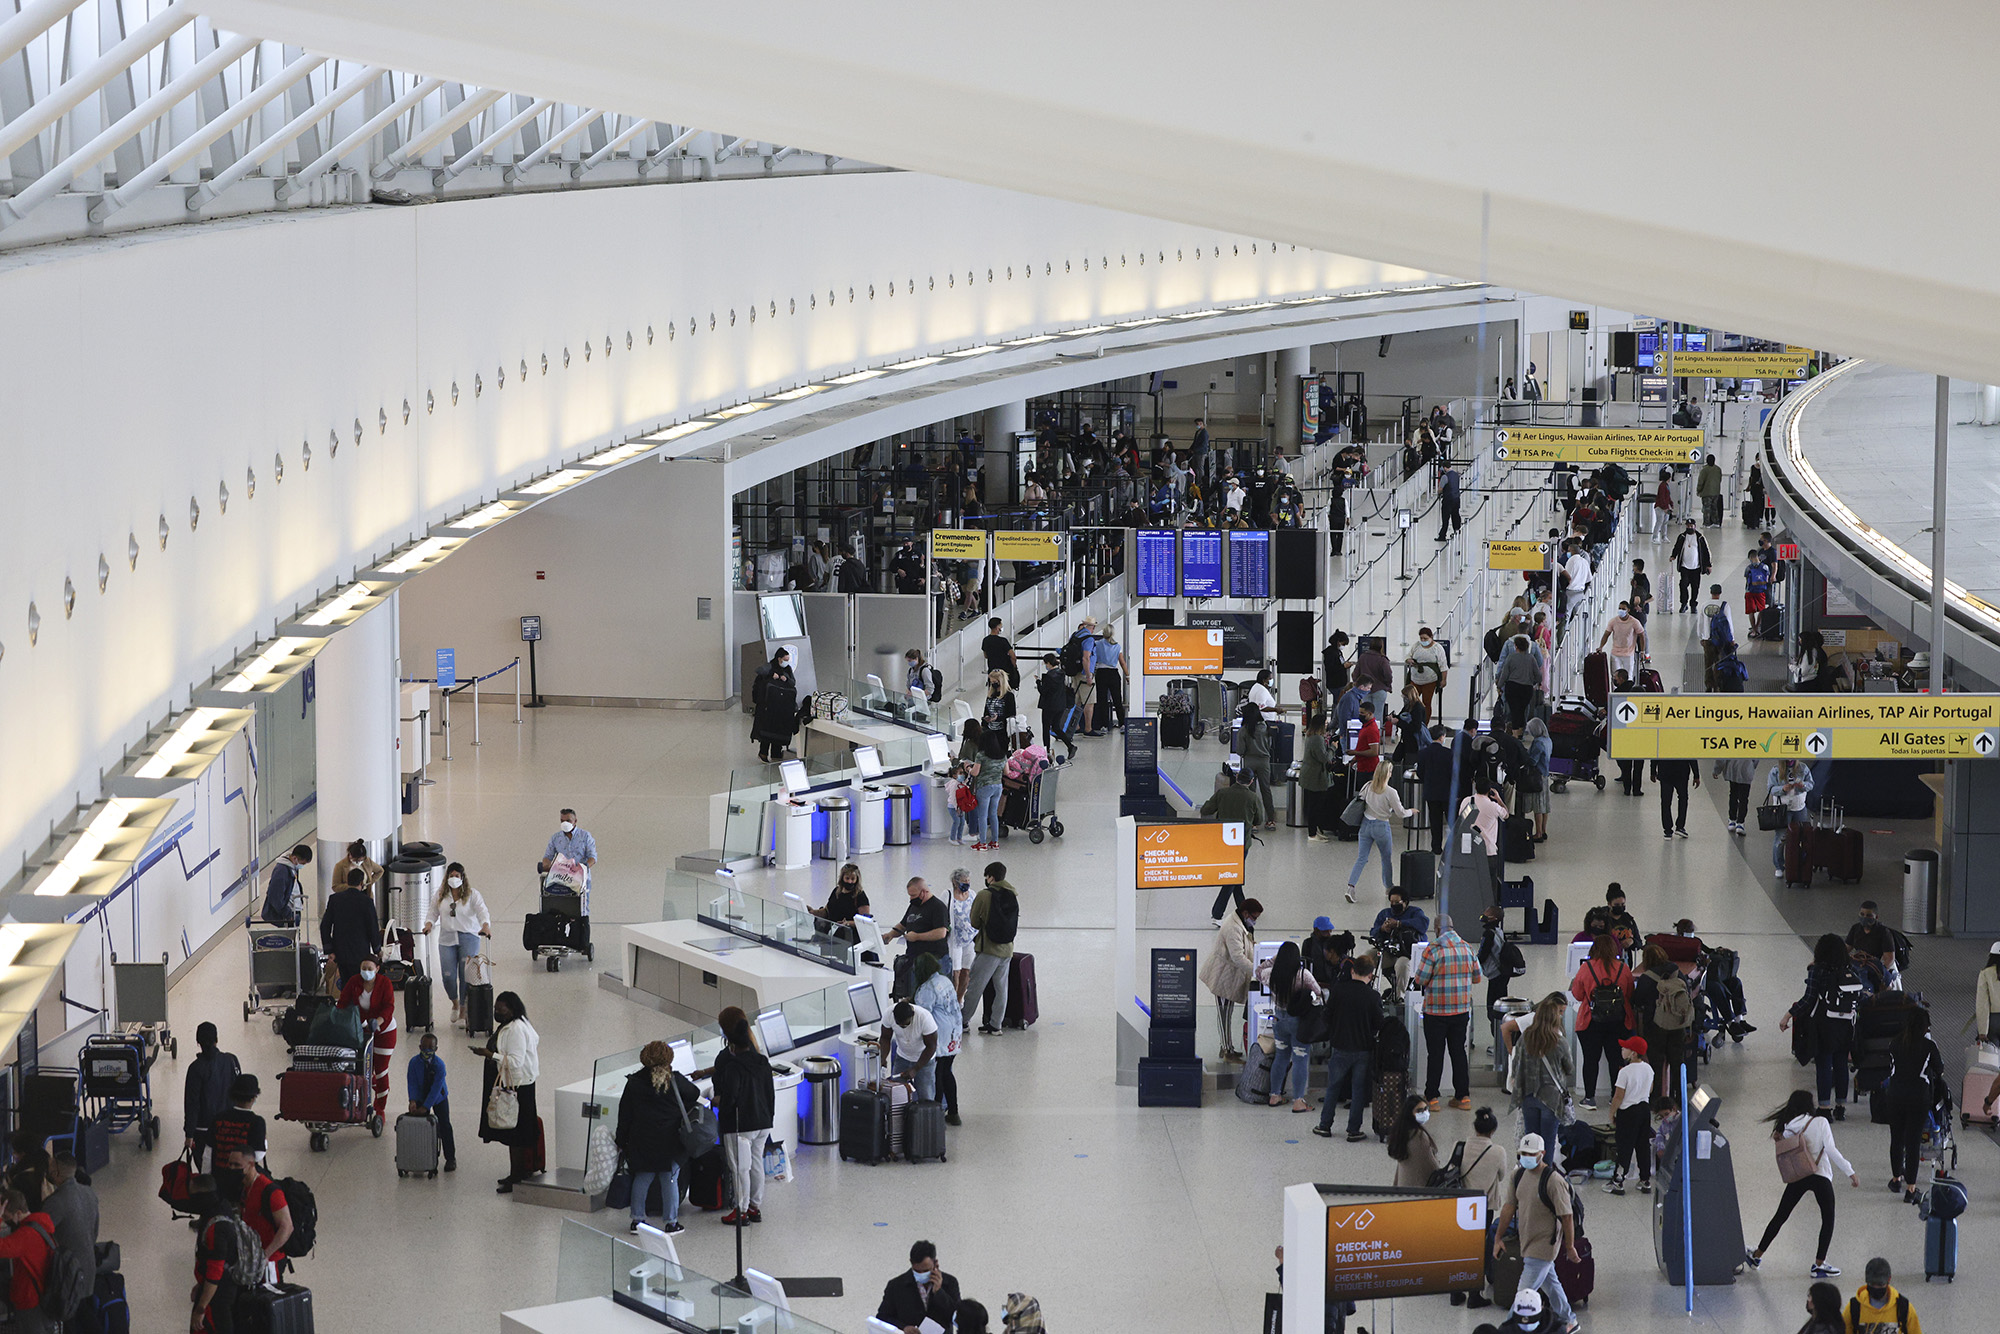 Travel is coming back. That's great news for airport stores